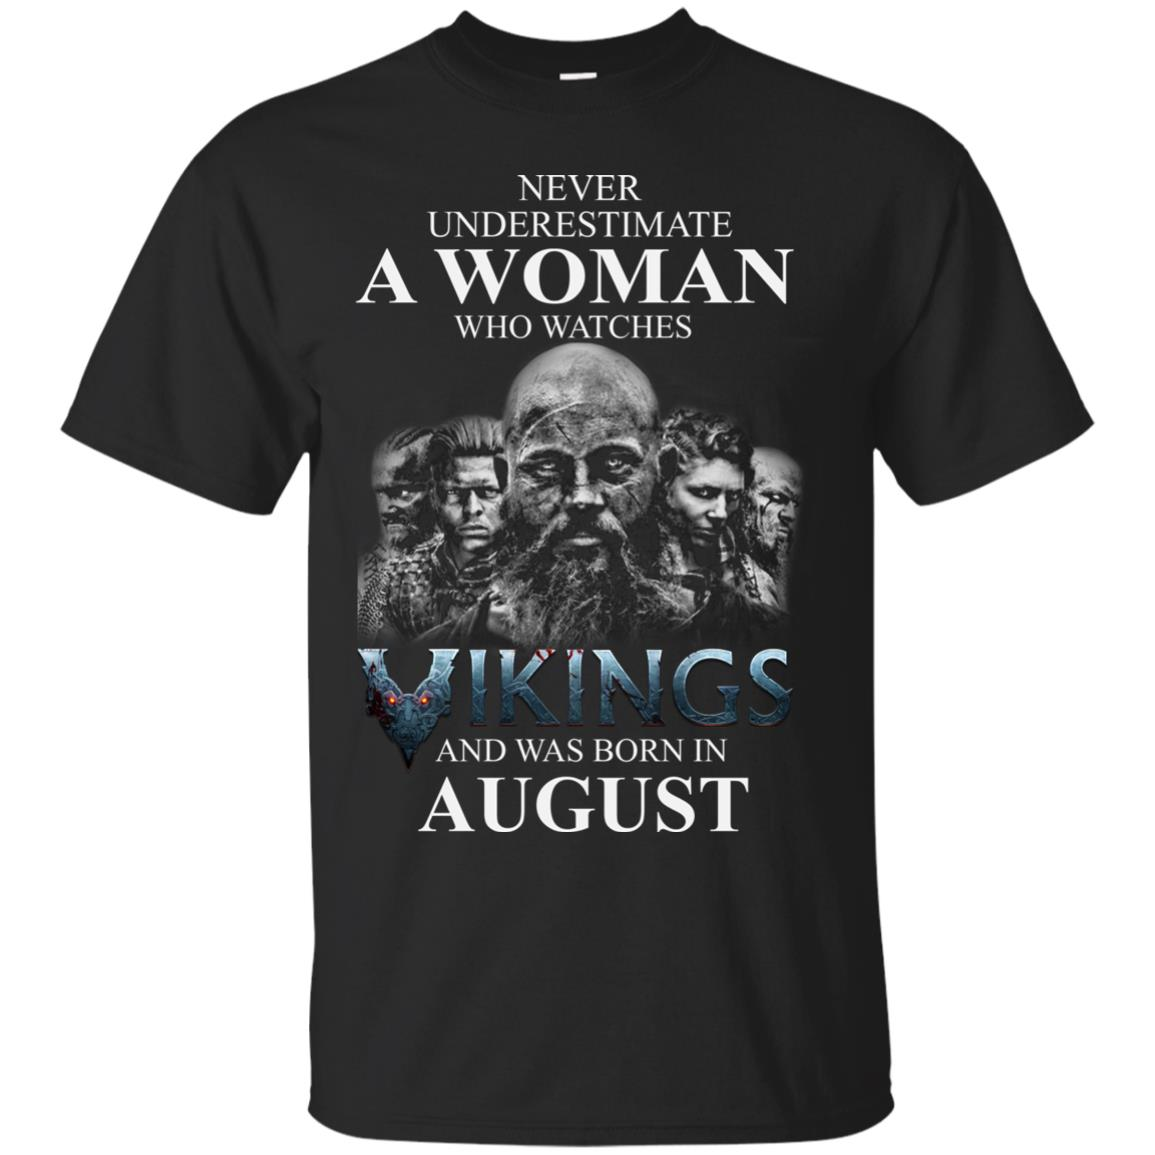 image 1267 - Never Underestimate A woman who watches Vikings and was born in August shirt